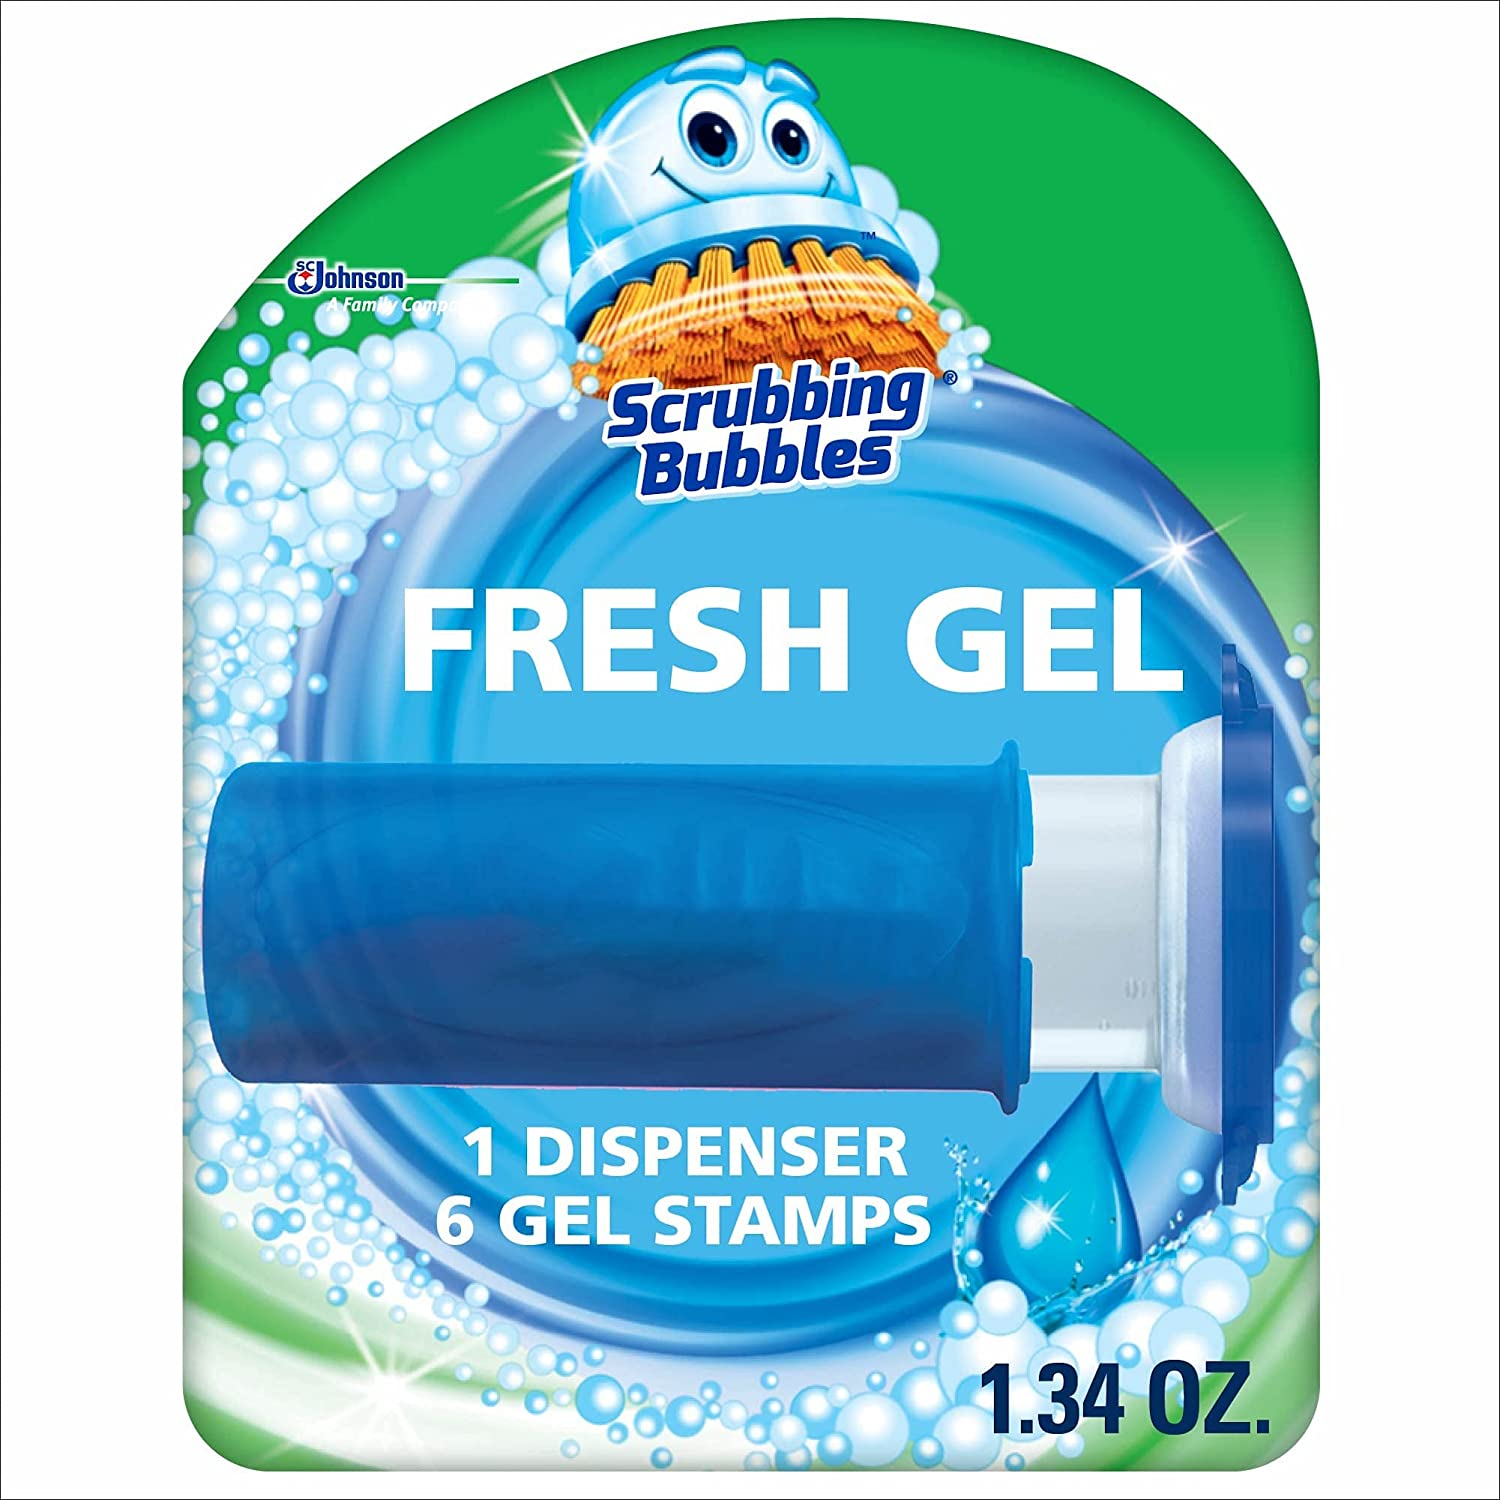 Scrubbing Bubbles Scented No-Touch Toilet Bowl Cleaner